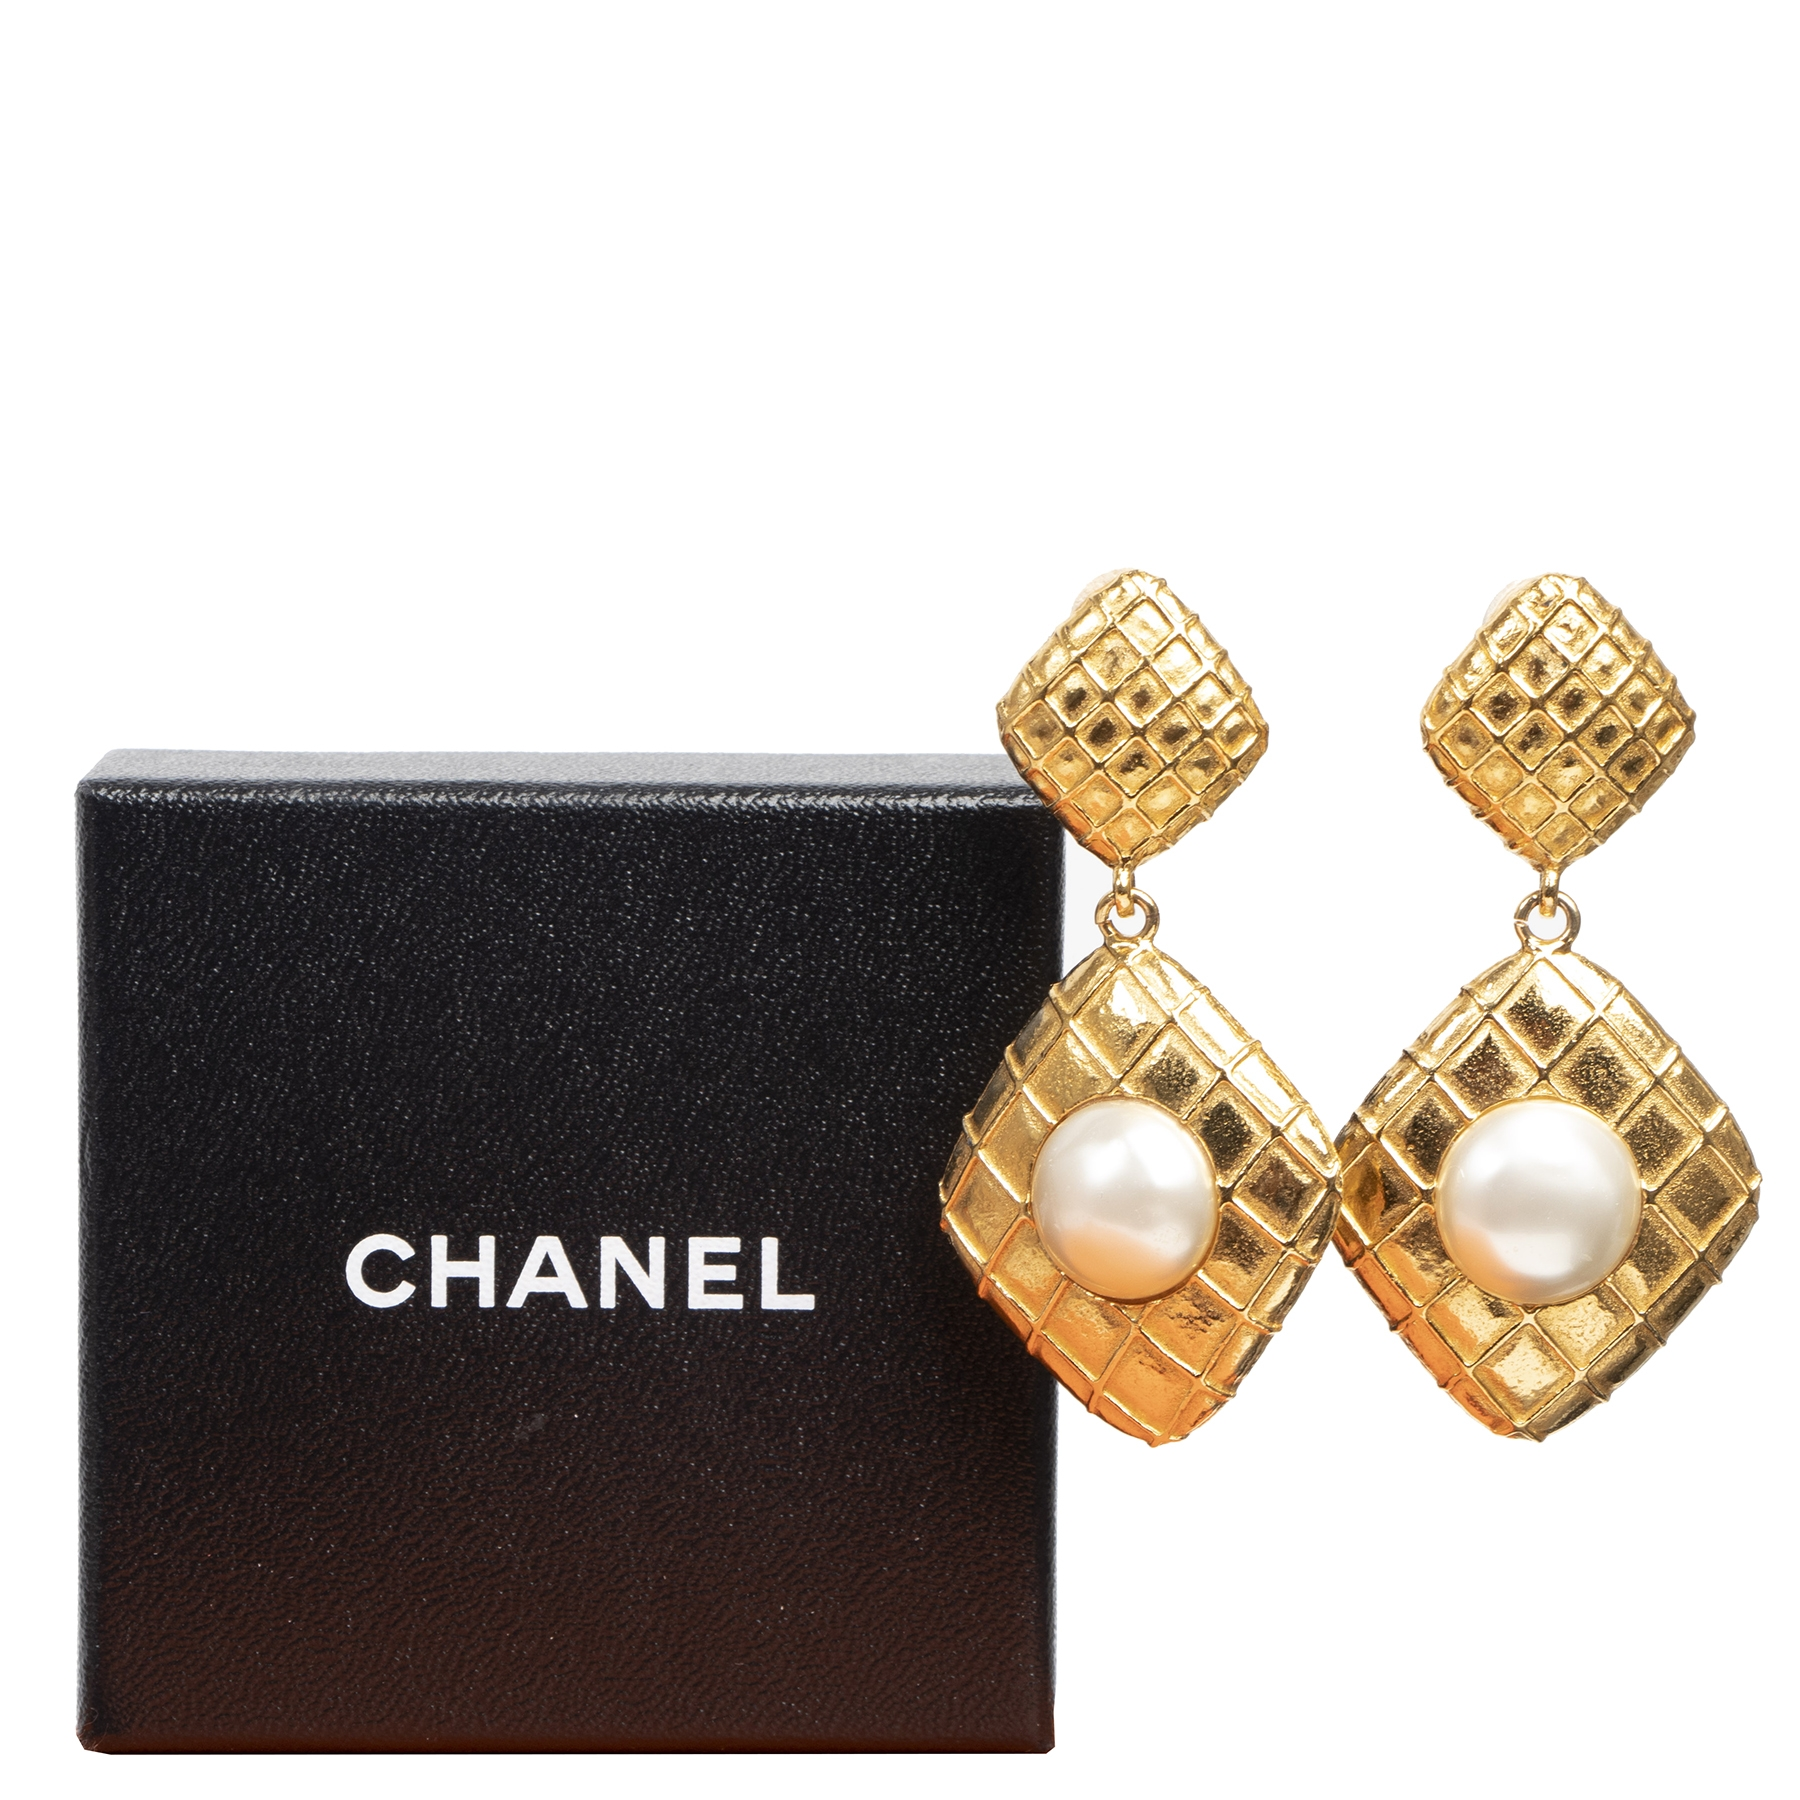 Authentic secondhand Chanel Gold Square Pearl Clip On Earrings designer accessories luxury vintage fashion webshop